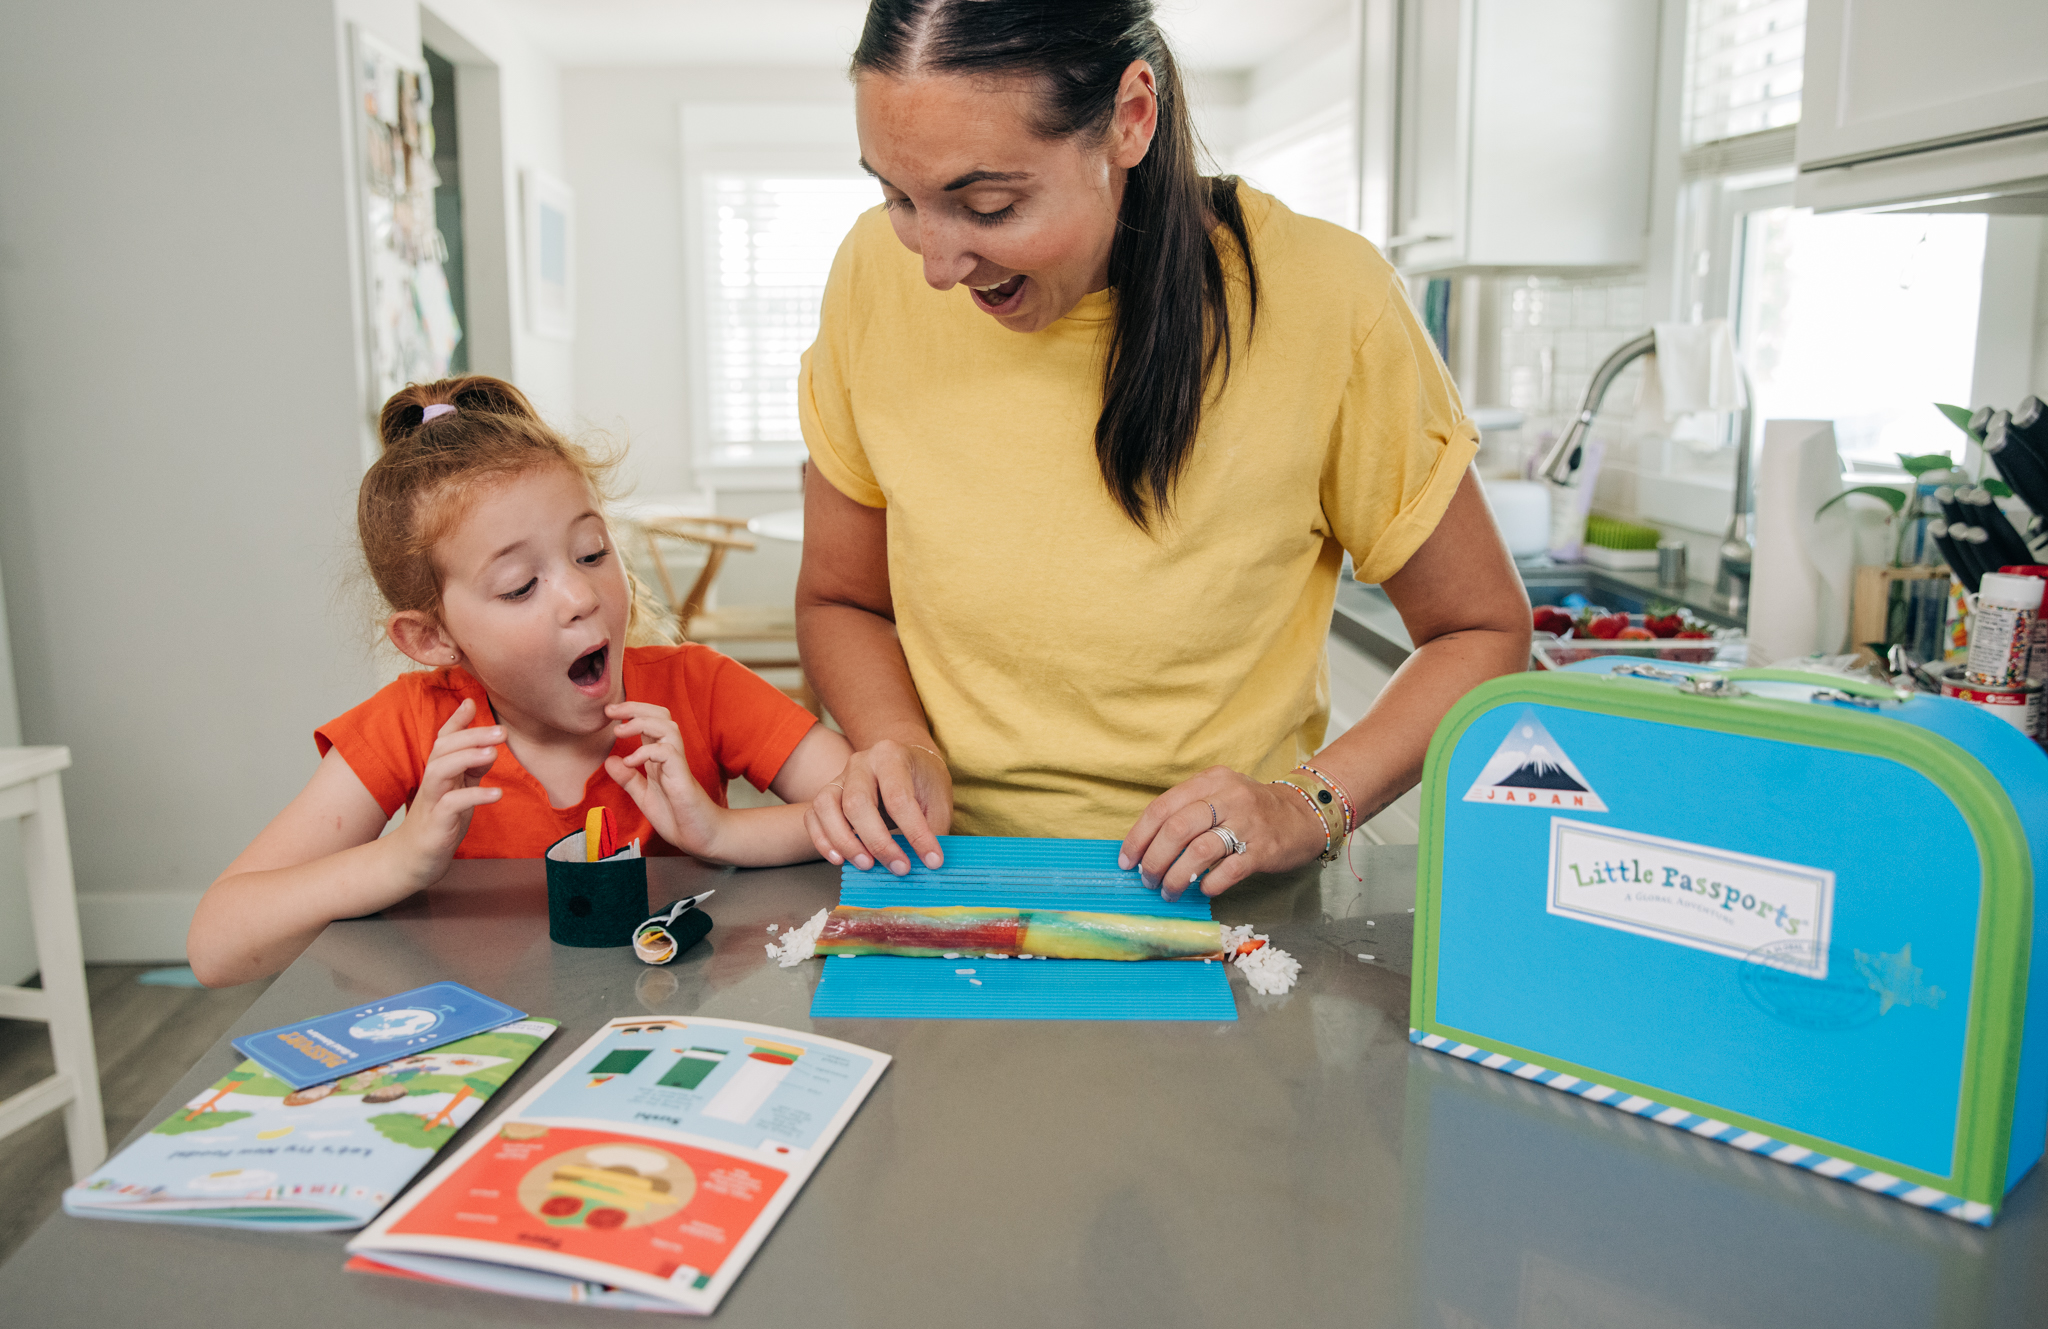 Make fruit sushi with this recipe from Baby Boy Bakery and Little Passports